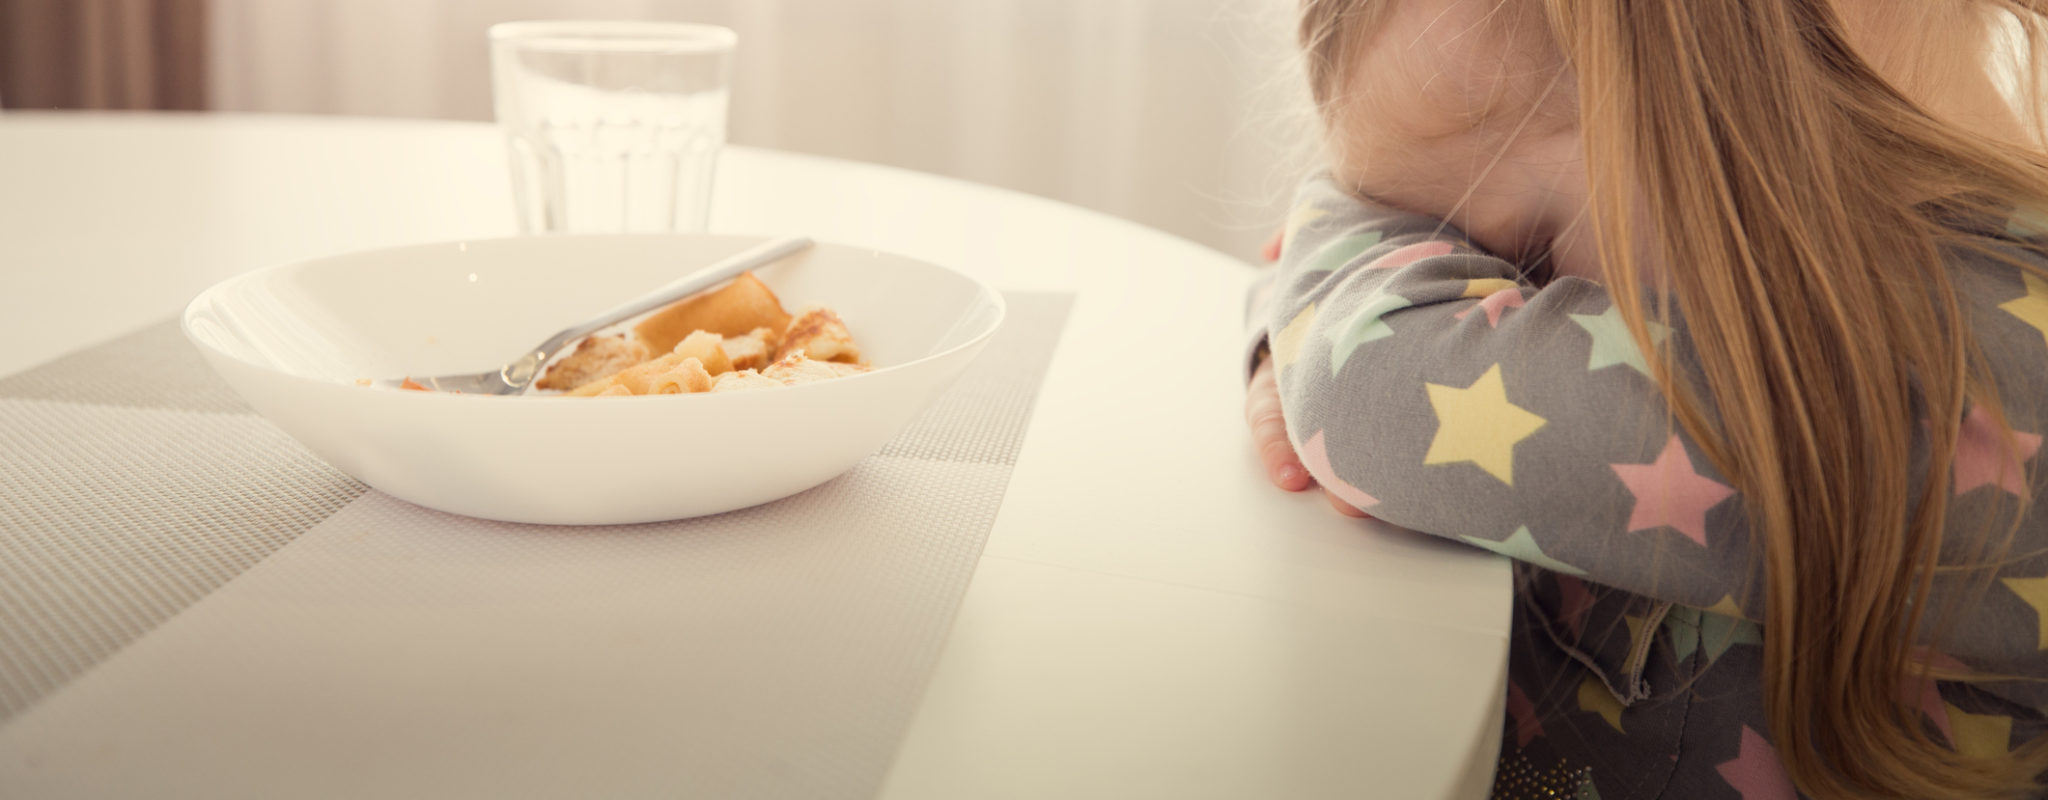 Is Your Child a Picky Eater?, Powered by Nemours Children's Health System